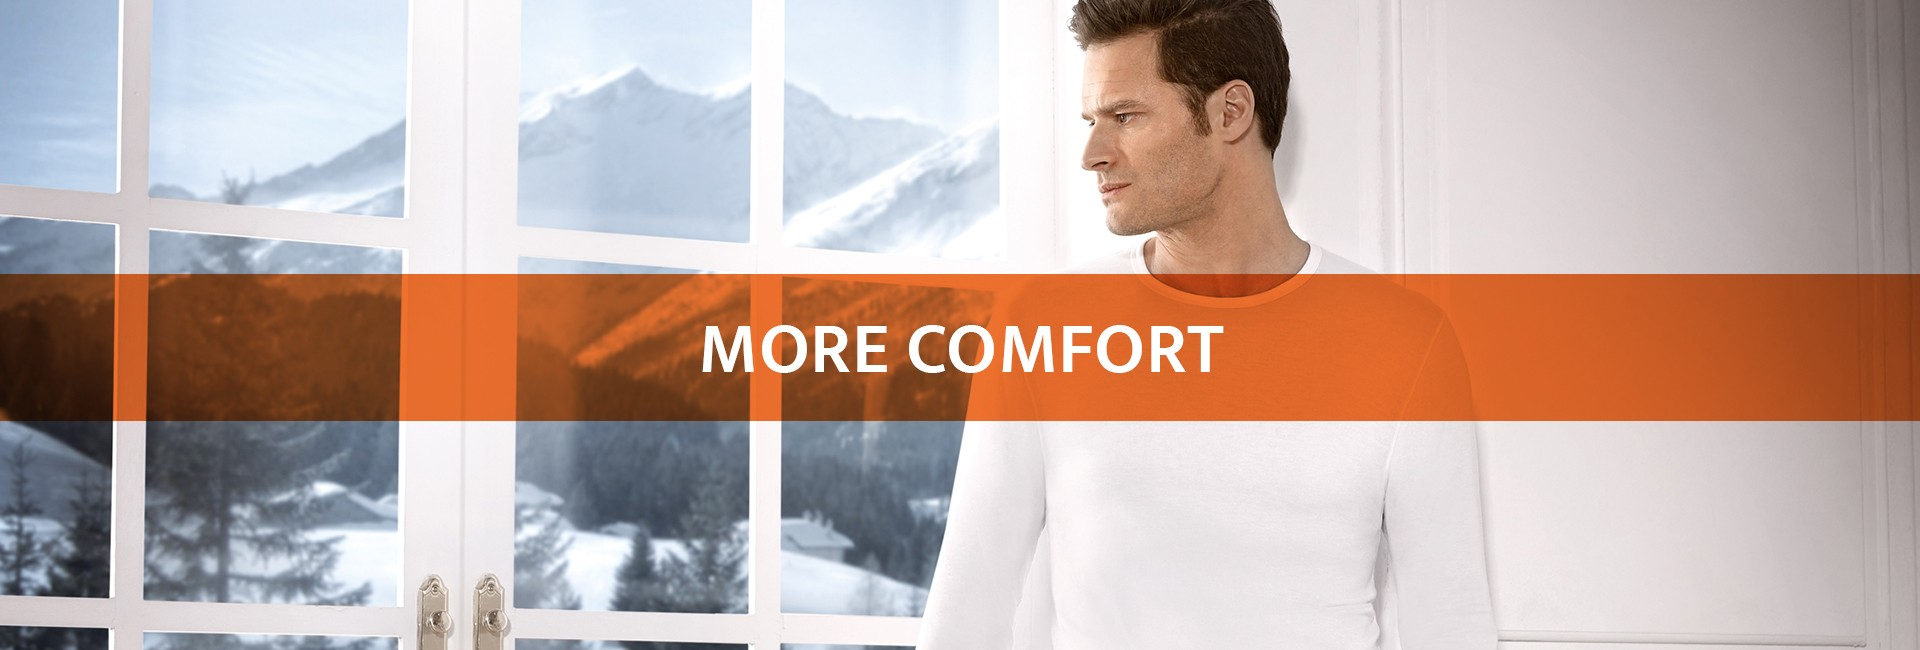 More elasticity | More adaptability | More mobility | More comfort | Thermal underwear_2